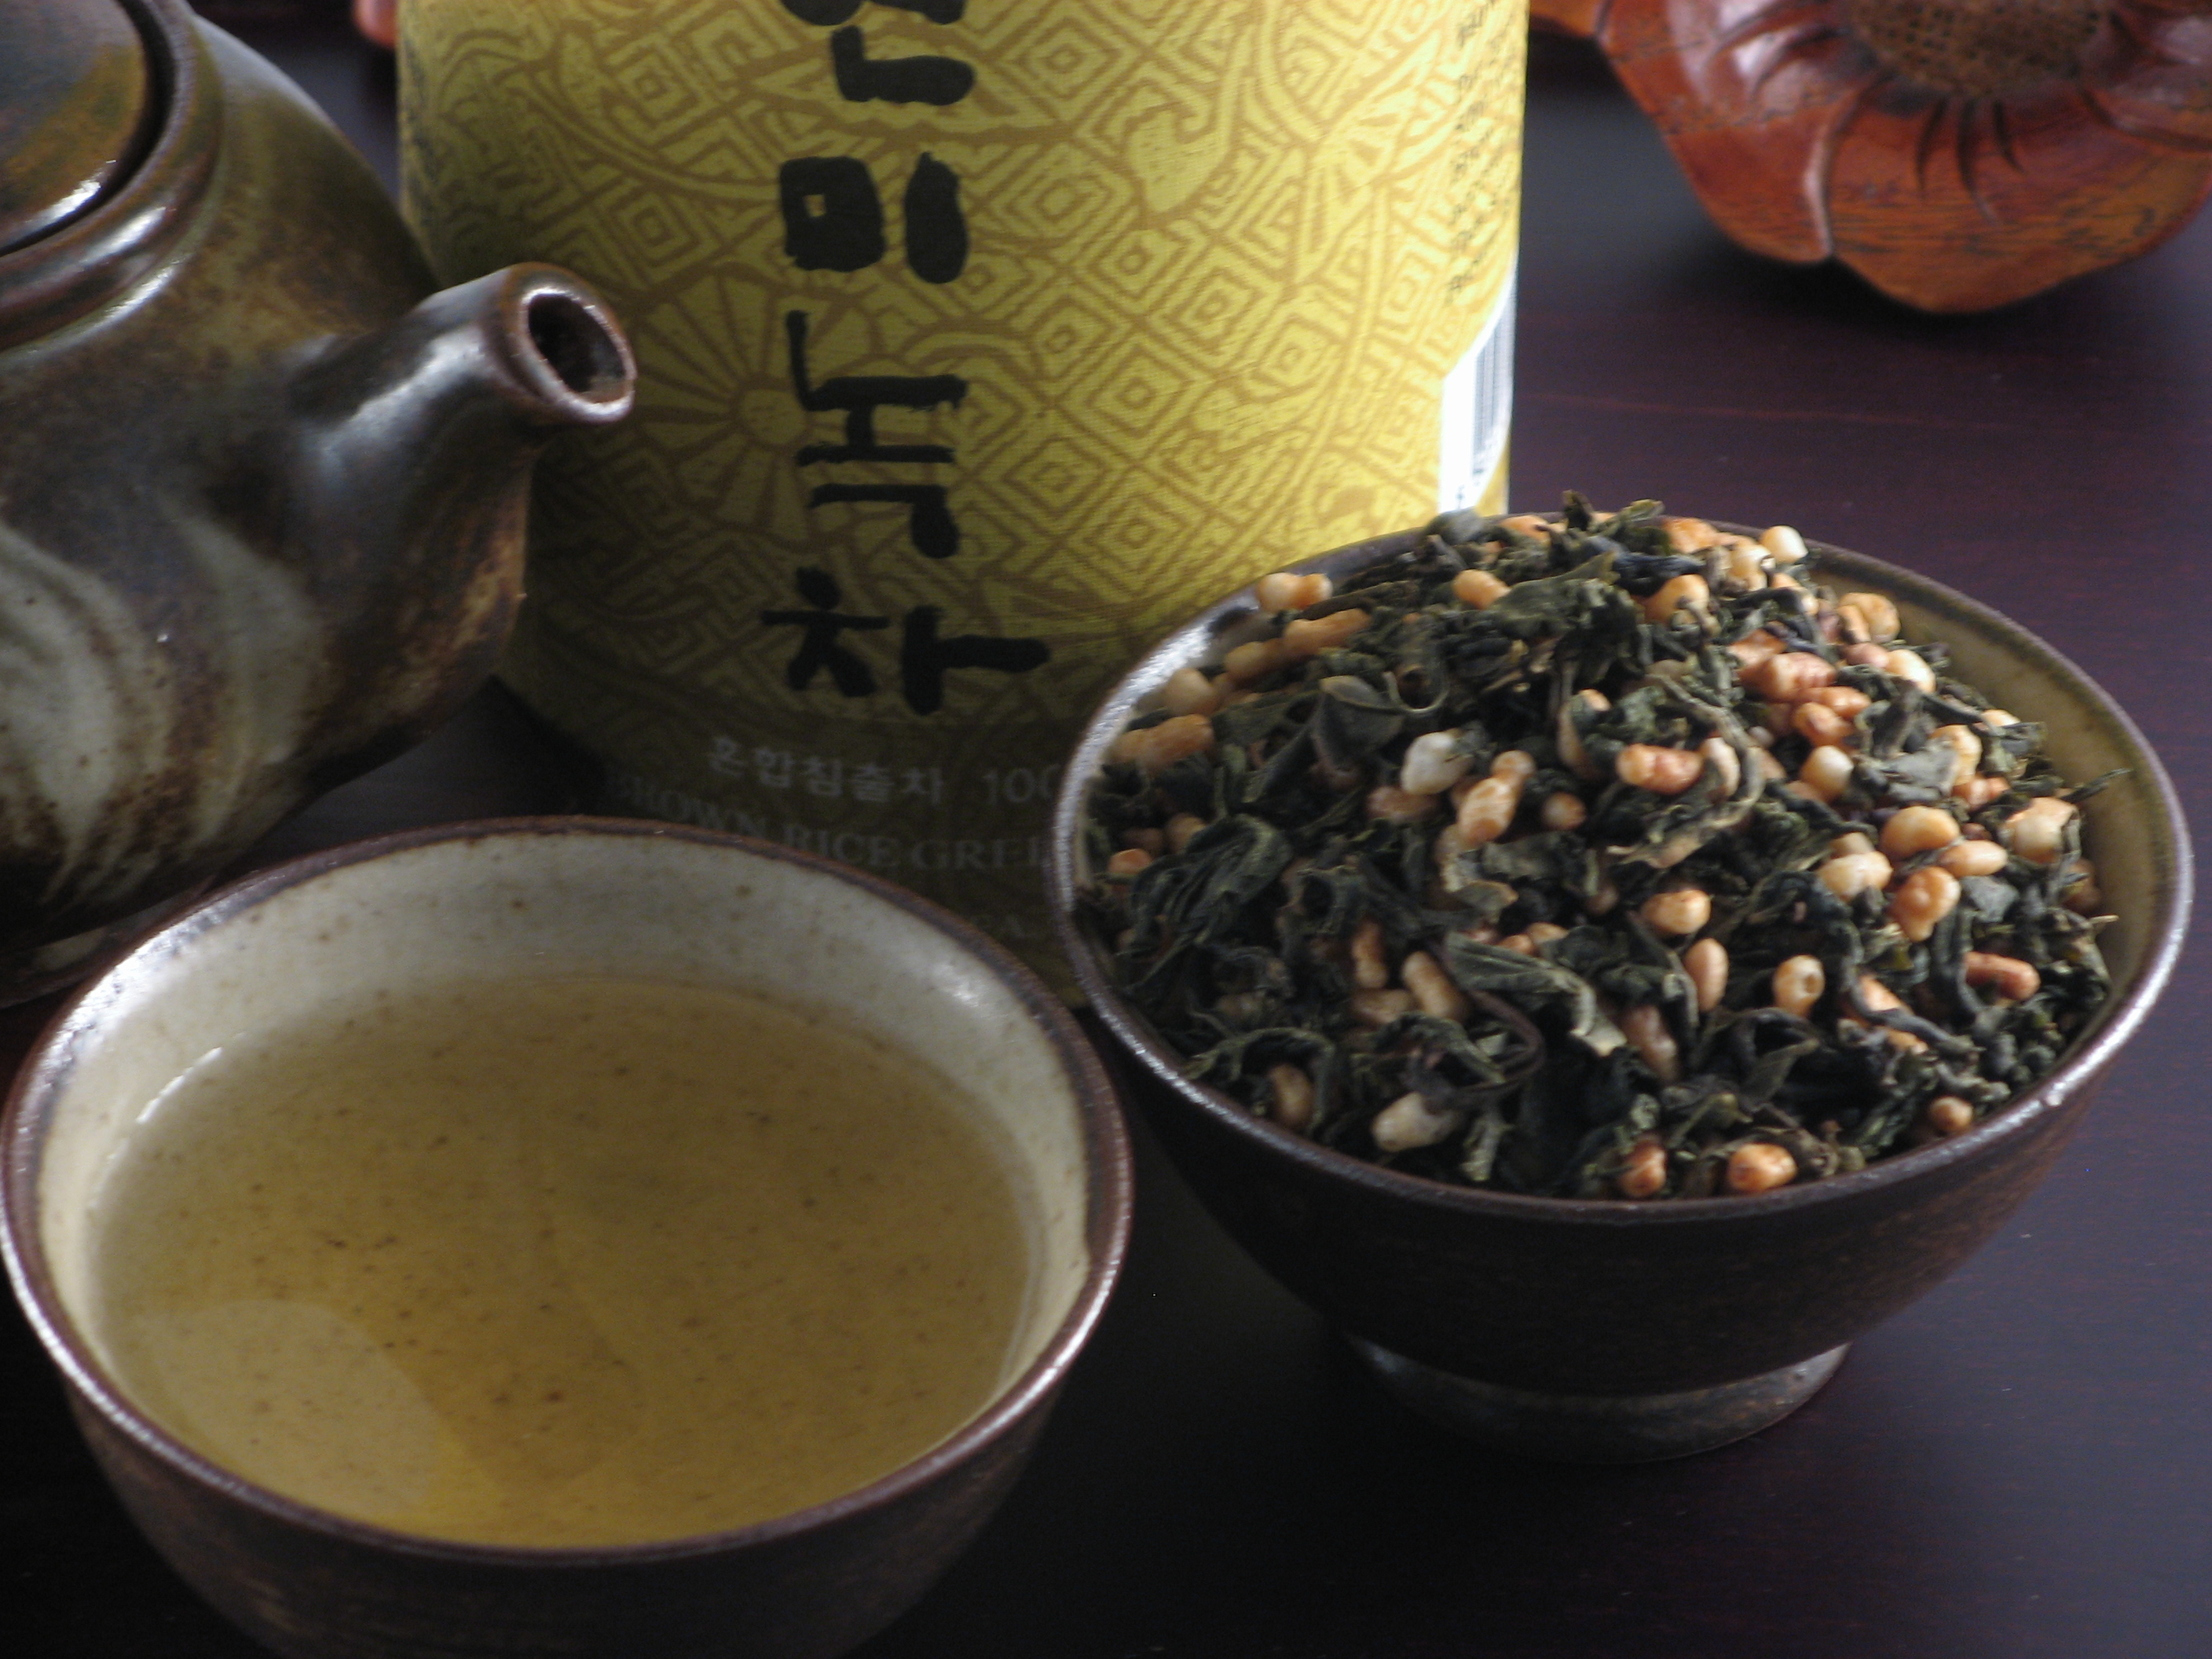 Loose tea blend and steeped tea in Duri Tobang Tea Set.